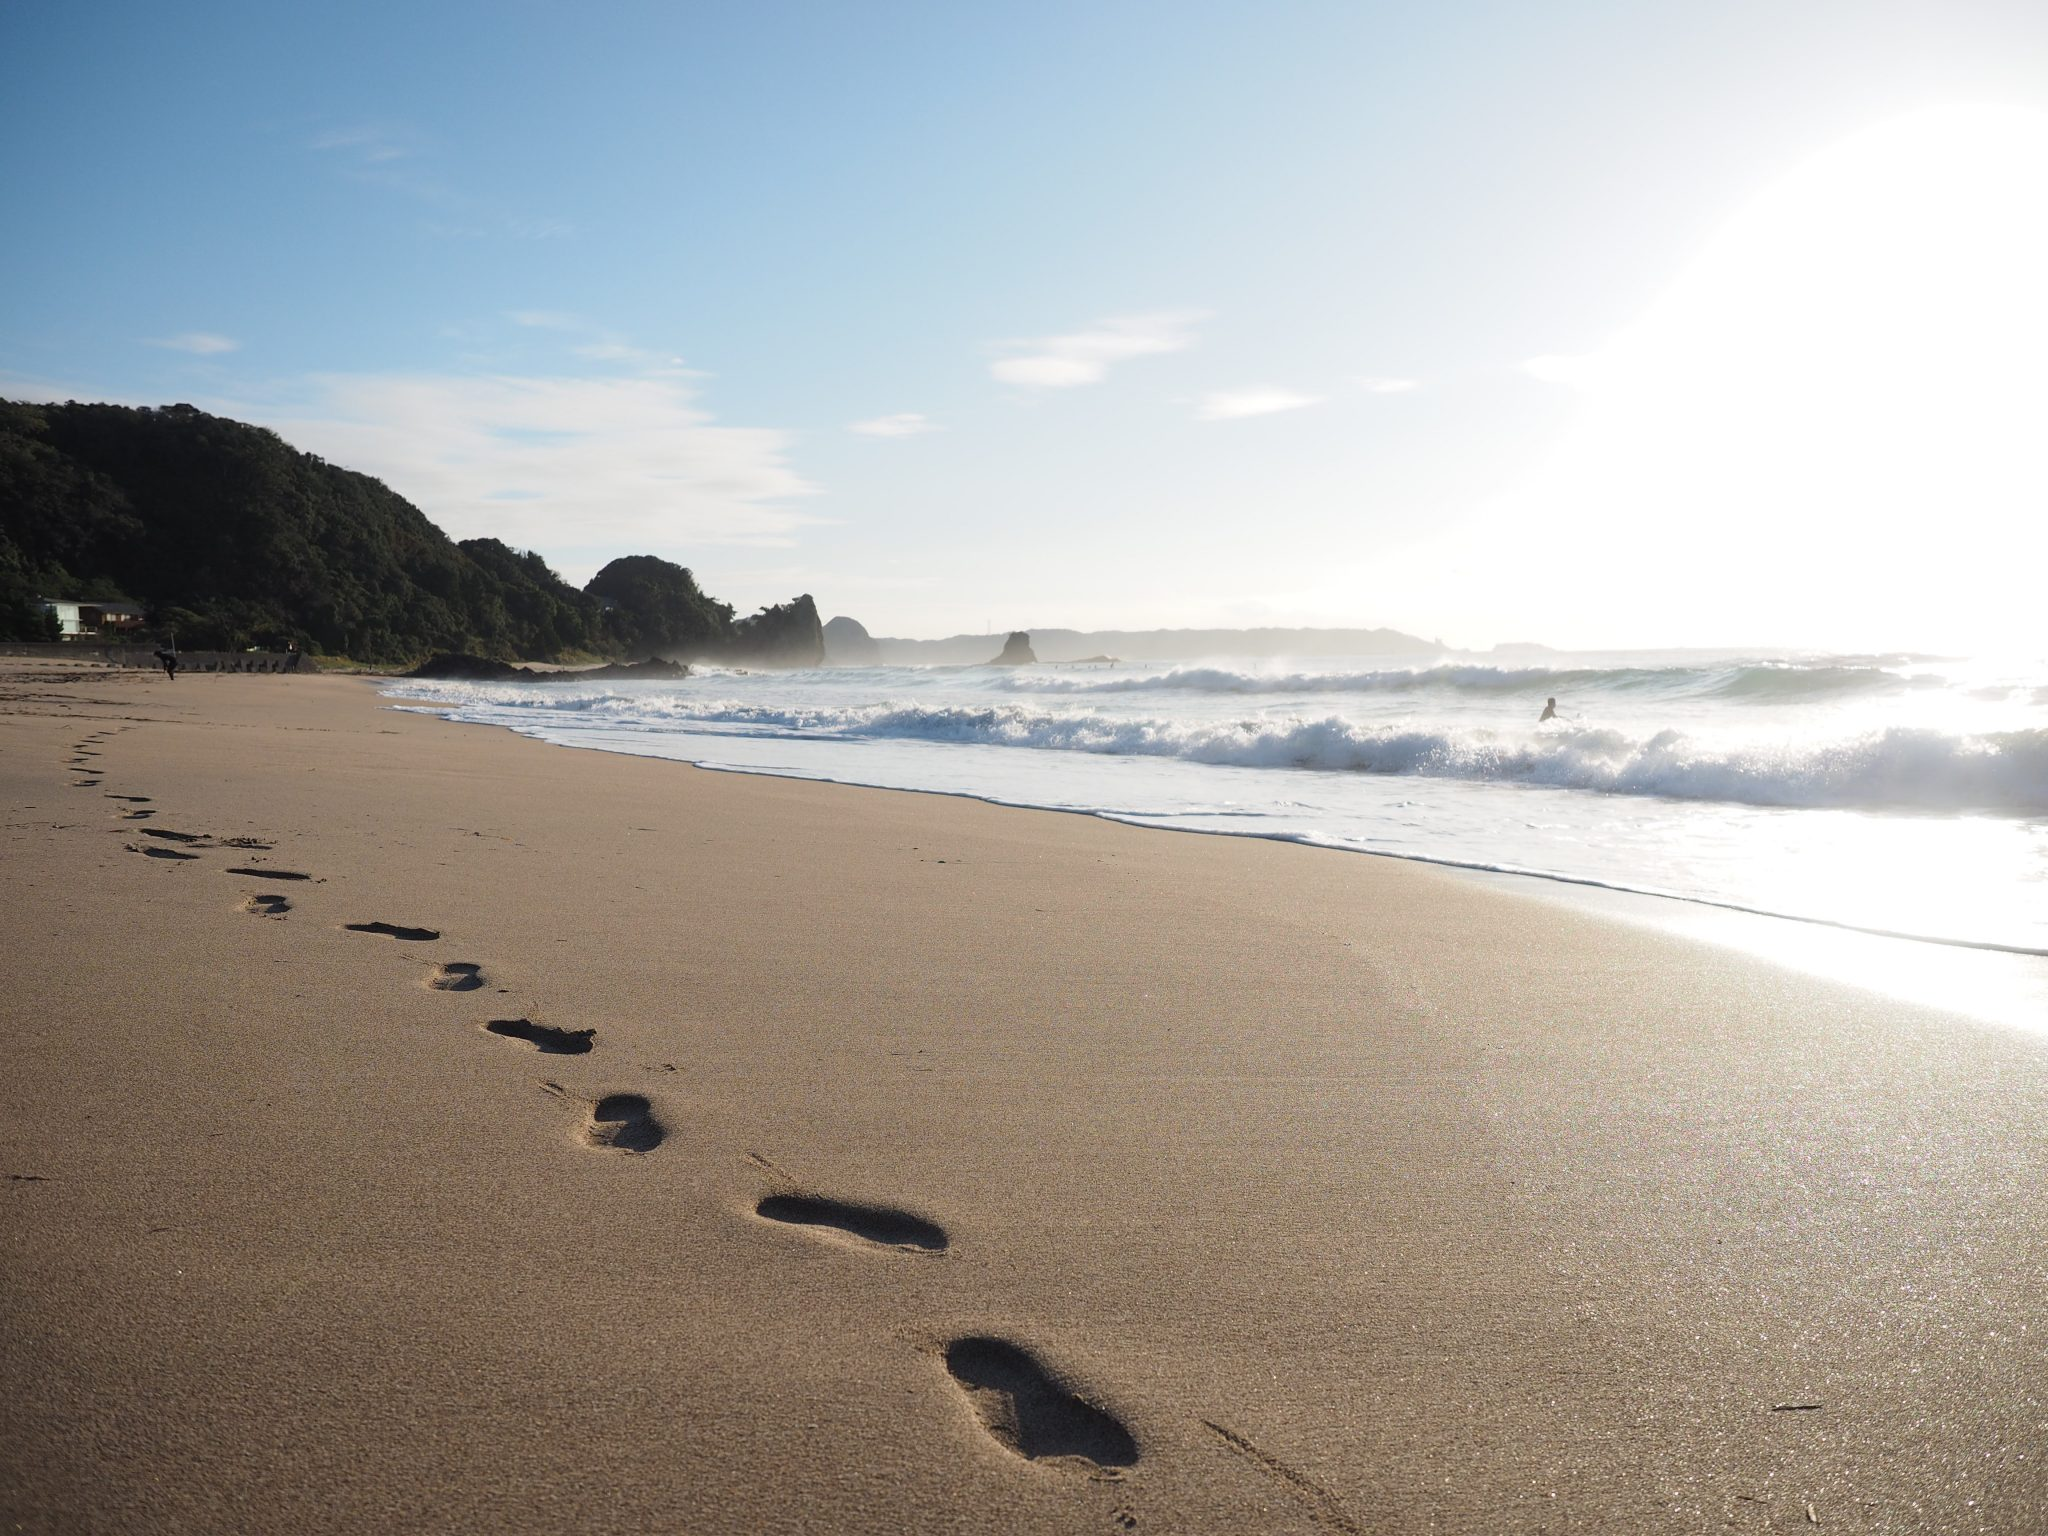 Footsteps in the sand at Kisami Ohama Walk